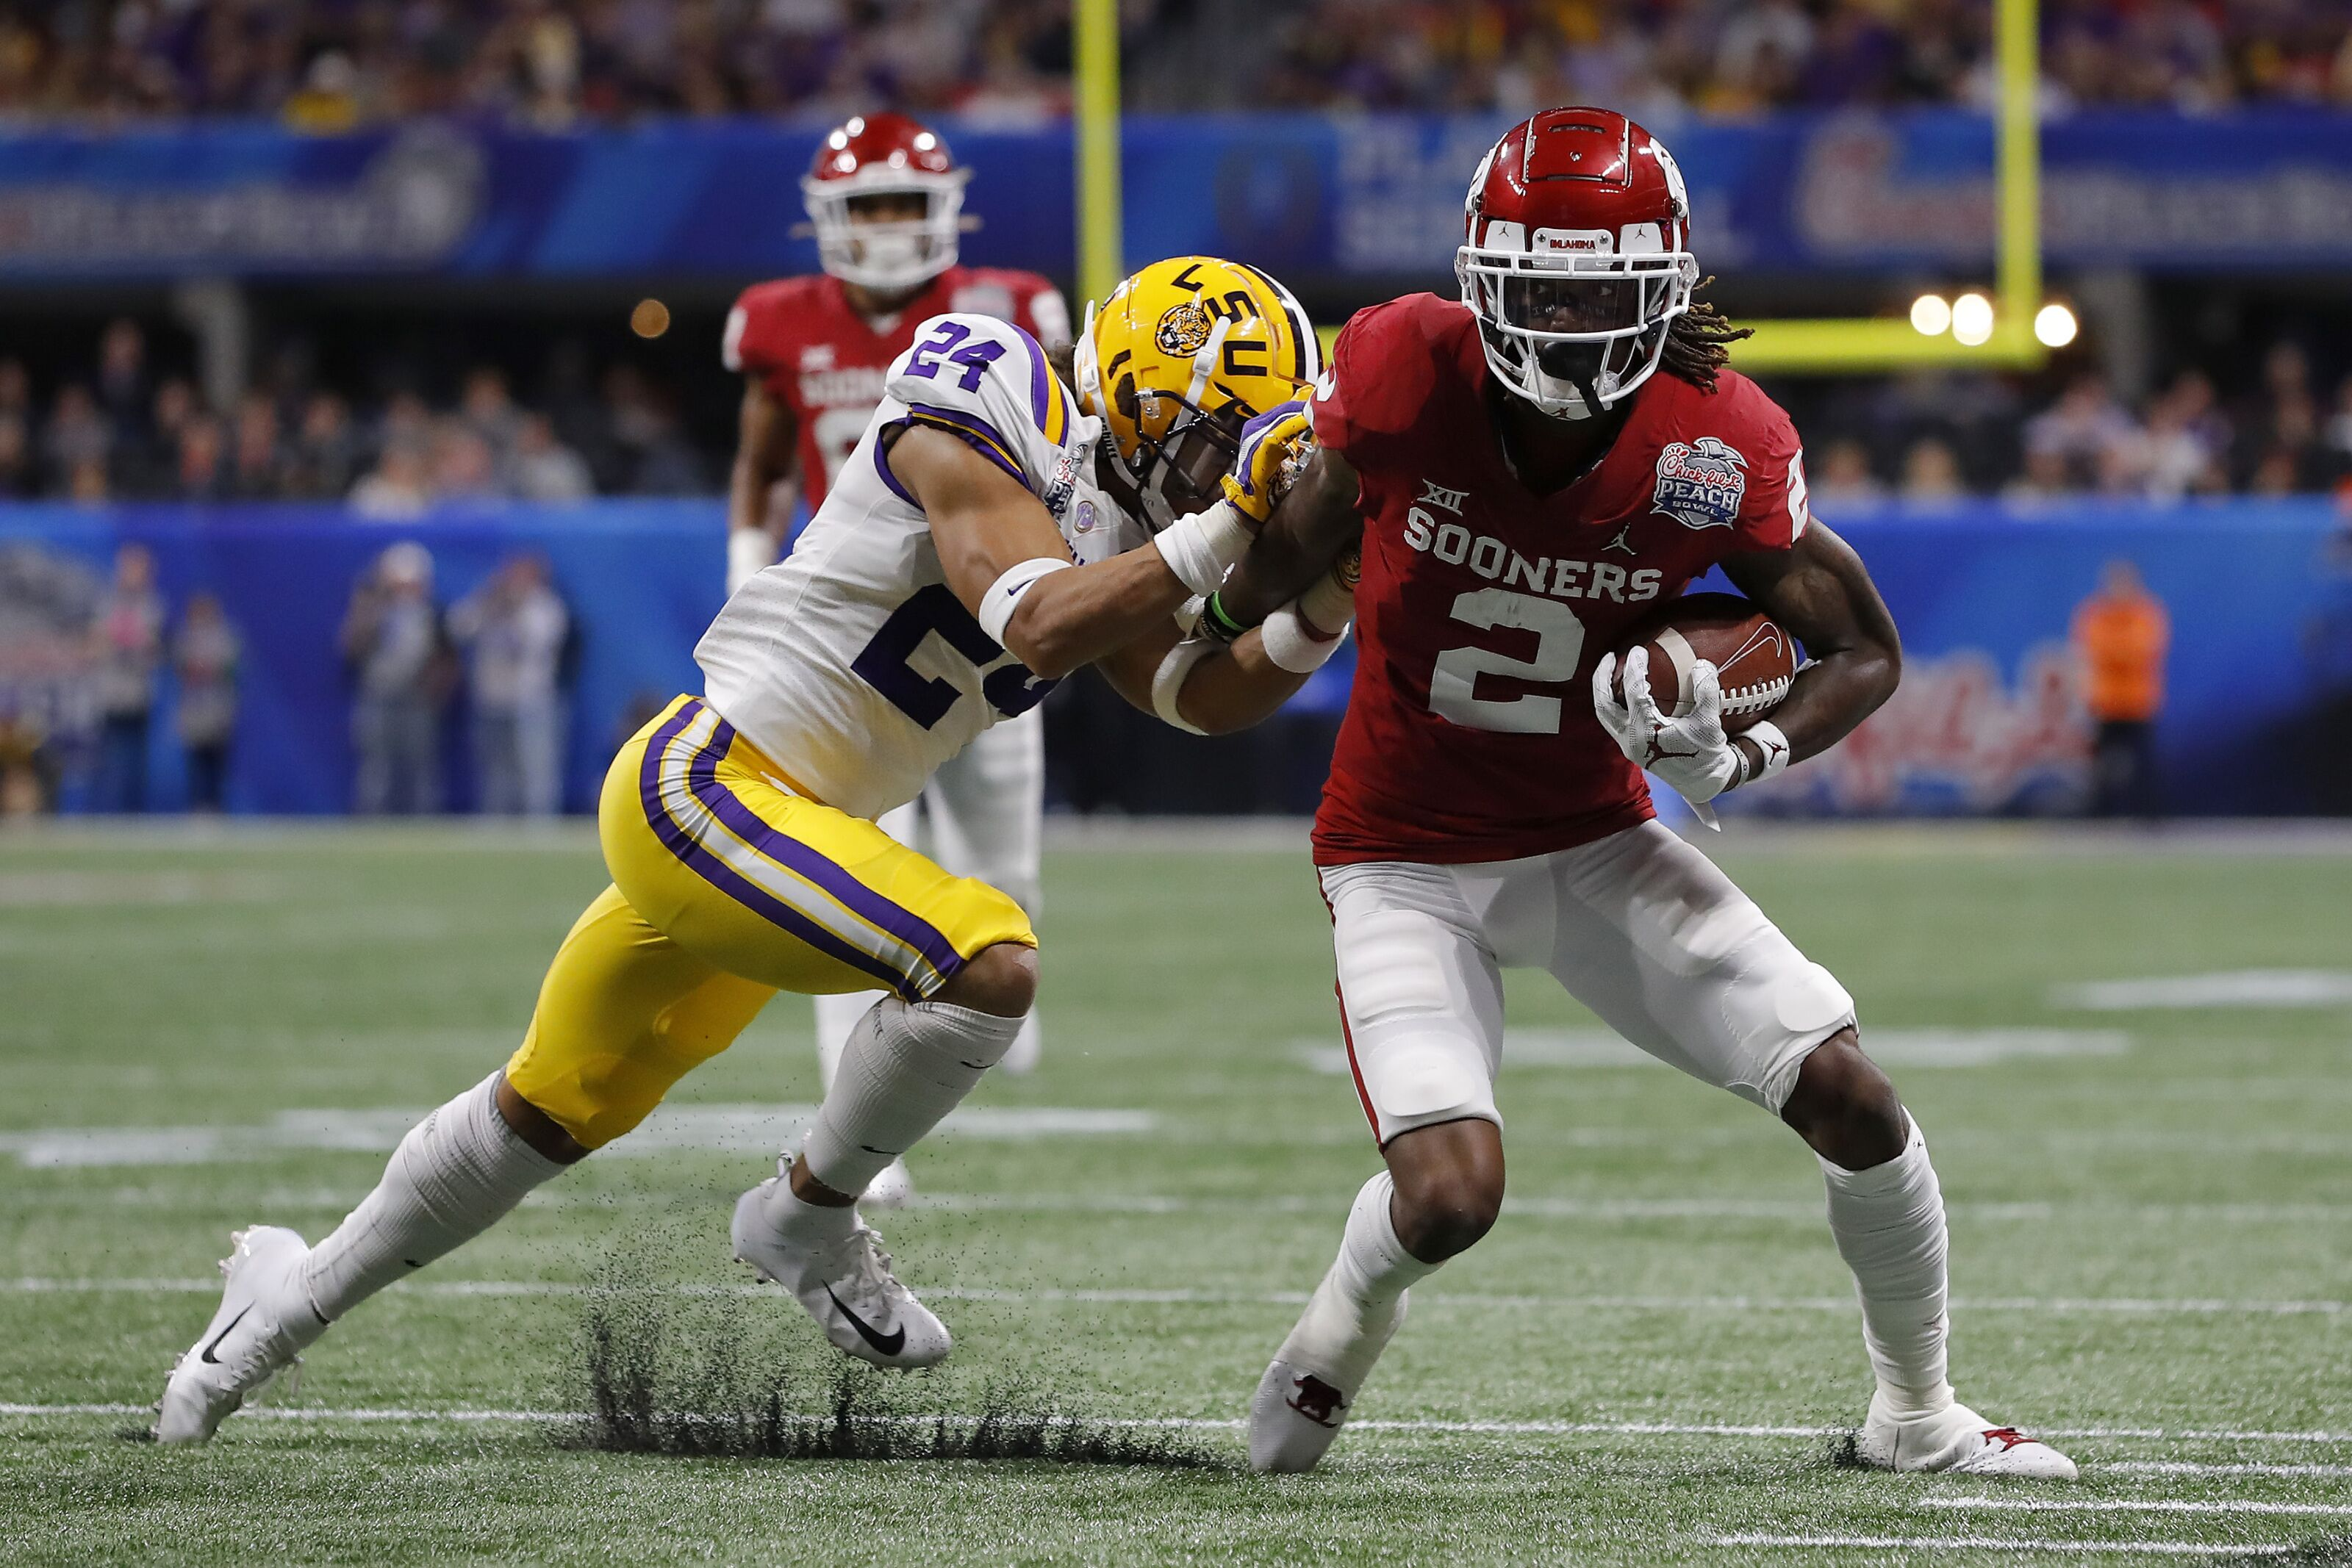 Oklahoma football: Sooners likely to have 3 first-rounders in April NFL Draft